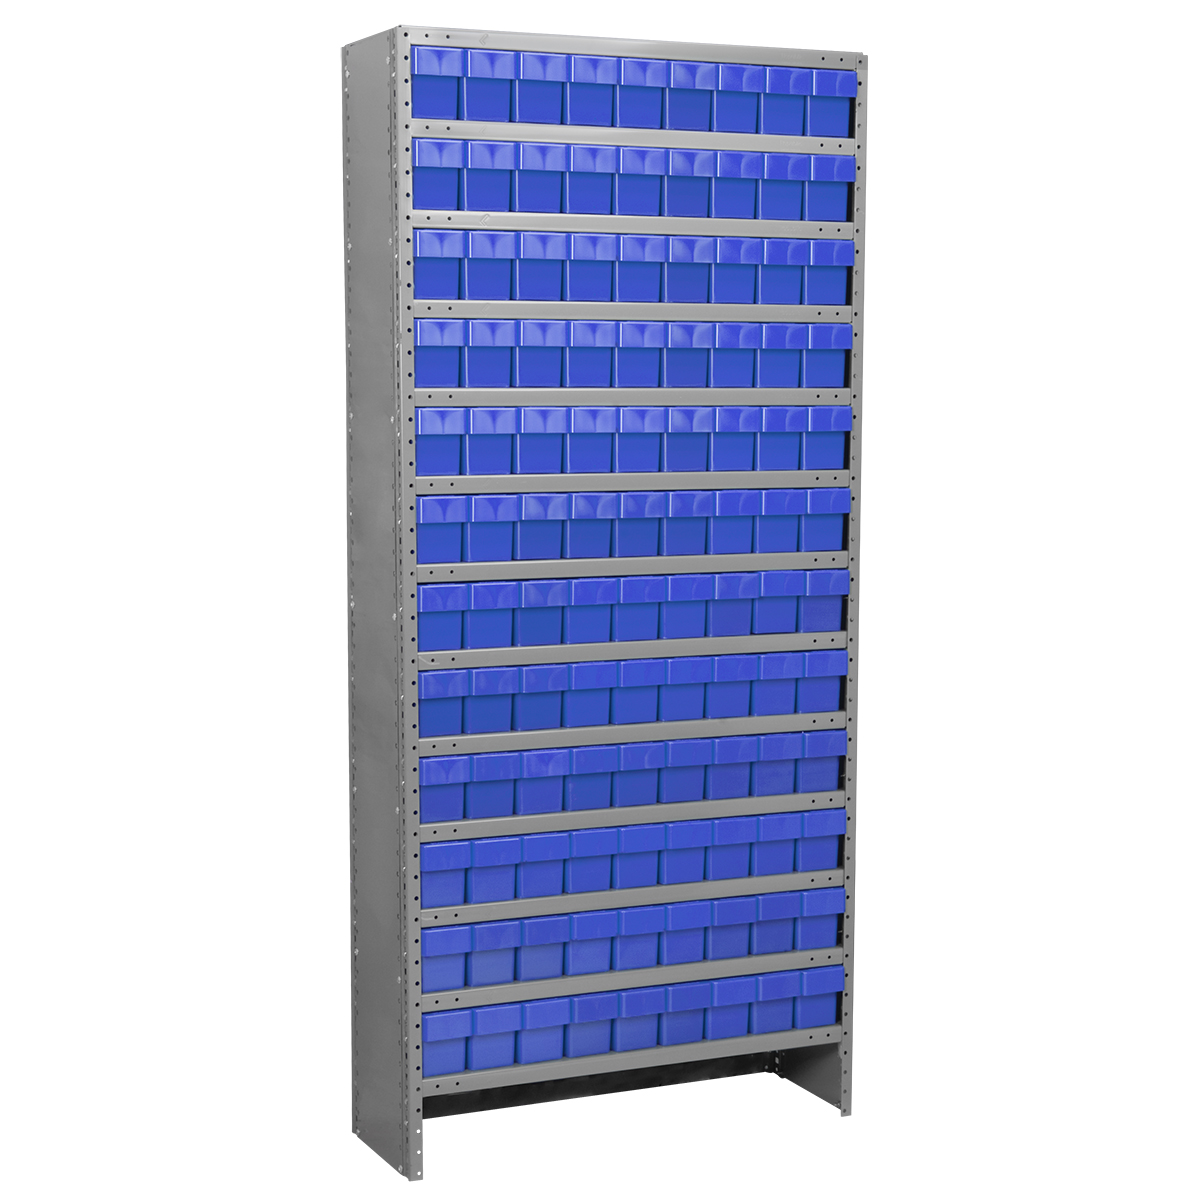 Enclosed Steel Shelving Kit, 12x36x79, 108 AkroDrawers, Gray/Blue.  This item sold in carton quantities of 1.